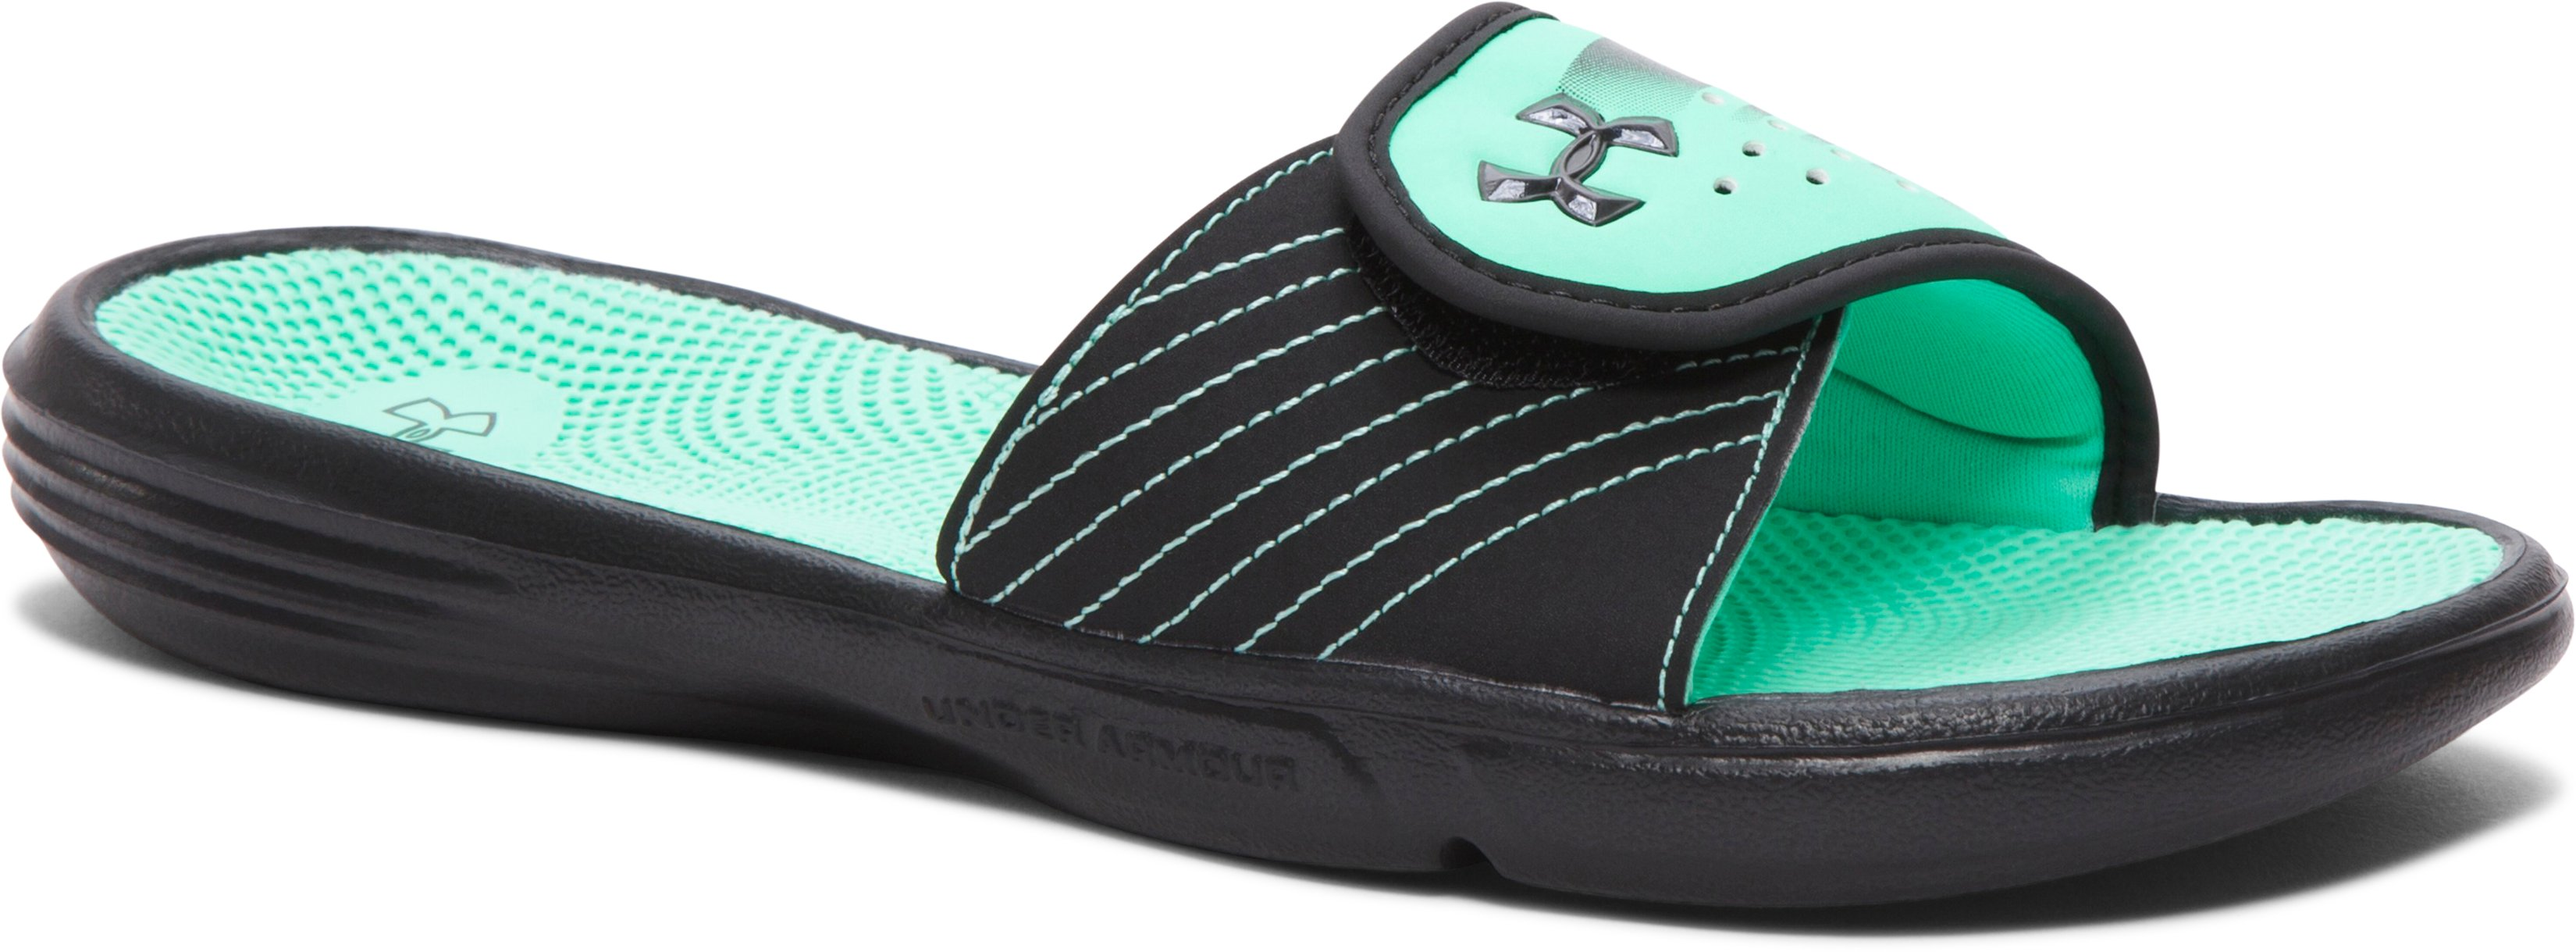 Fantastic Under Armour Memory Foam Flip Flops Feature 4D Memory Foam These Are So ComfortableThey Are A Size 5Y But I Wear A Womens Size 7 And They Fit Me So I Used The Womens Size Perhaps A 612 Would Fit Better Only Worn